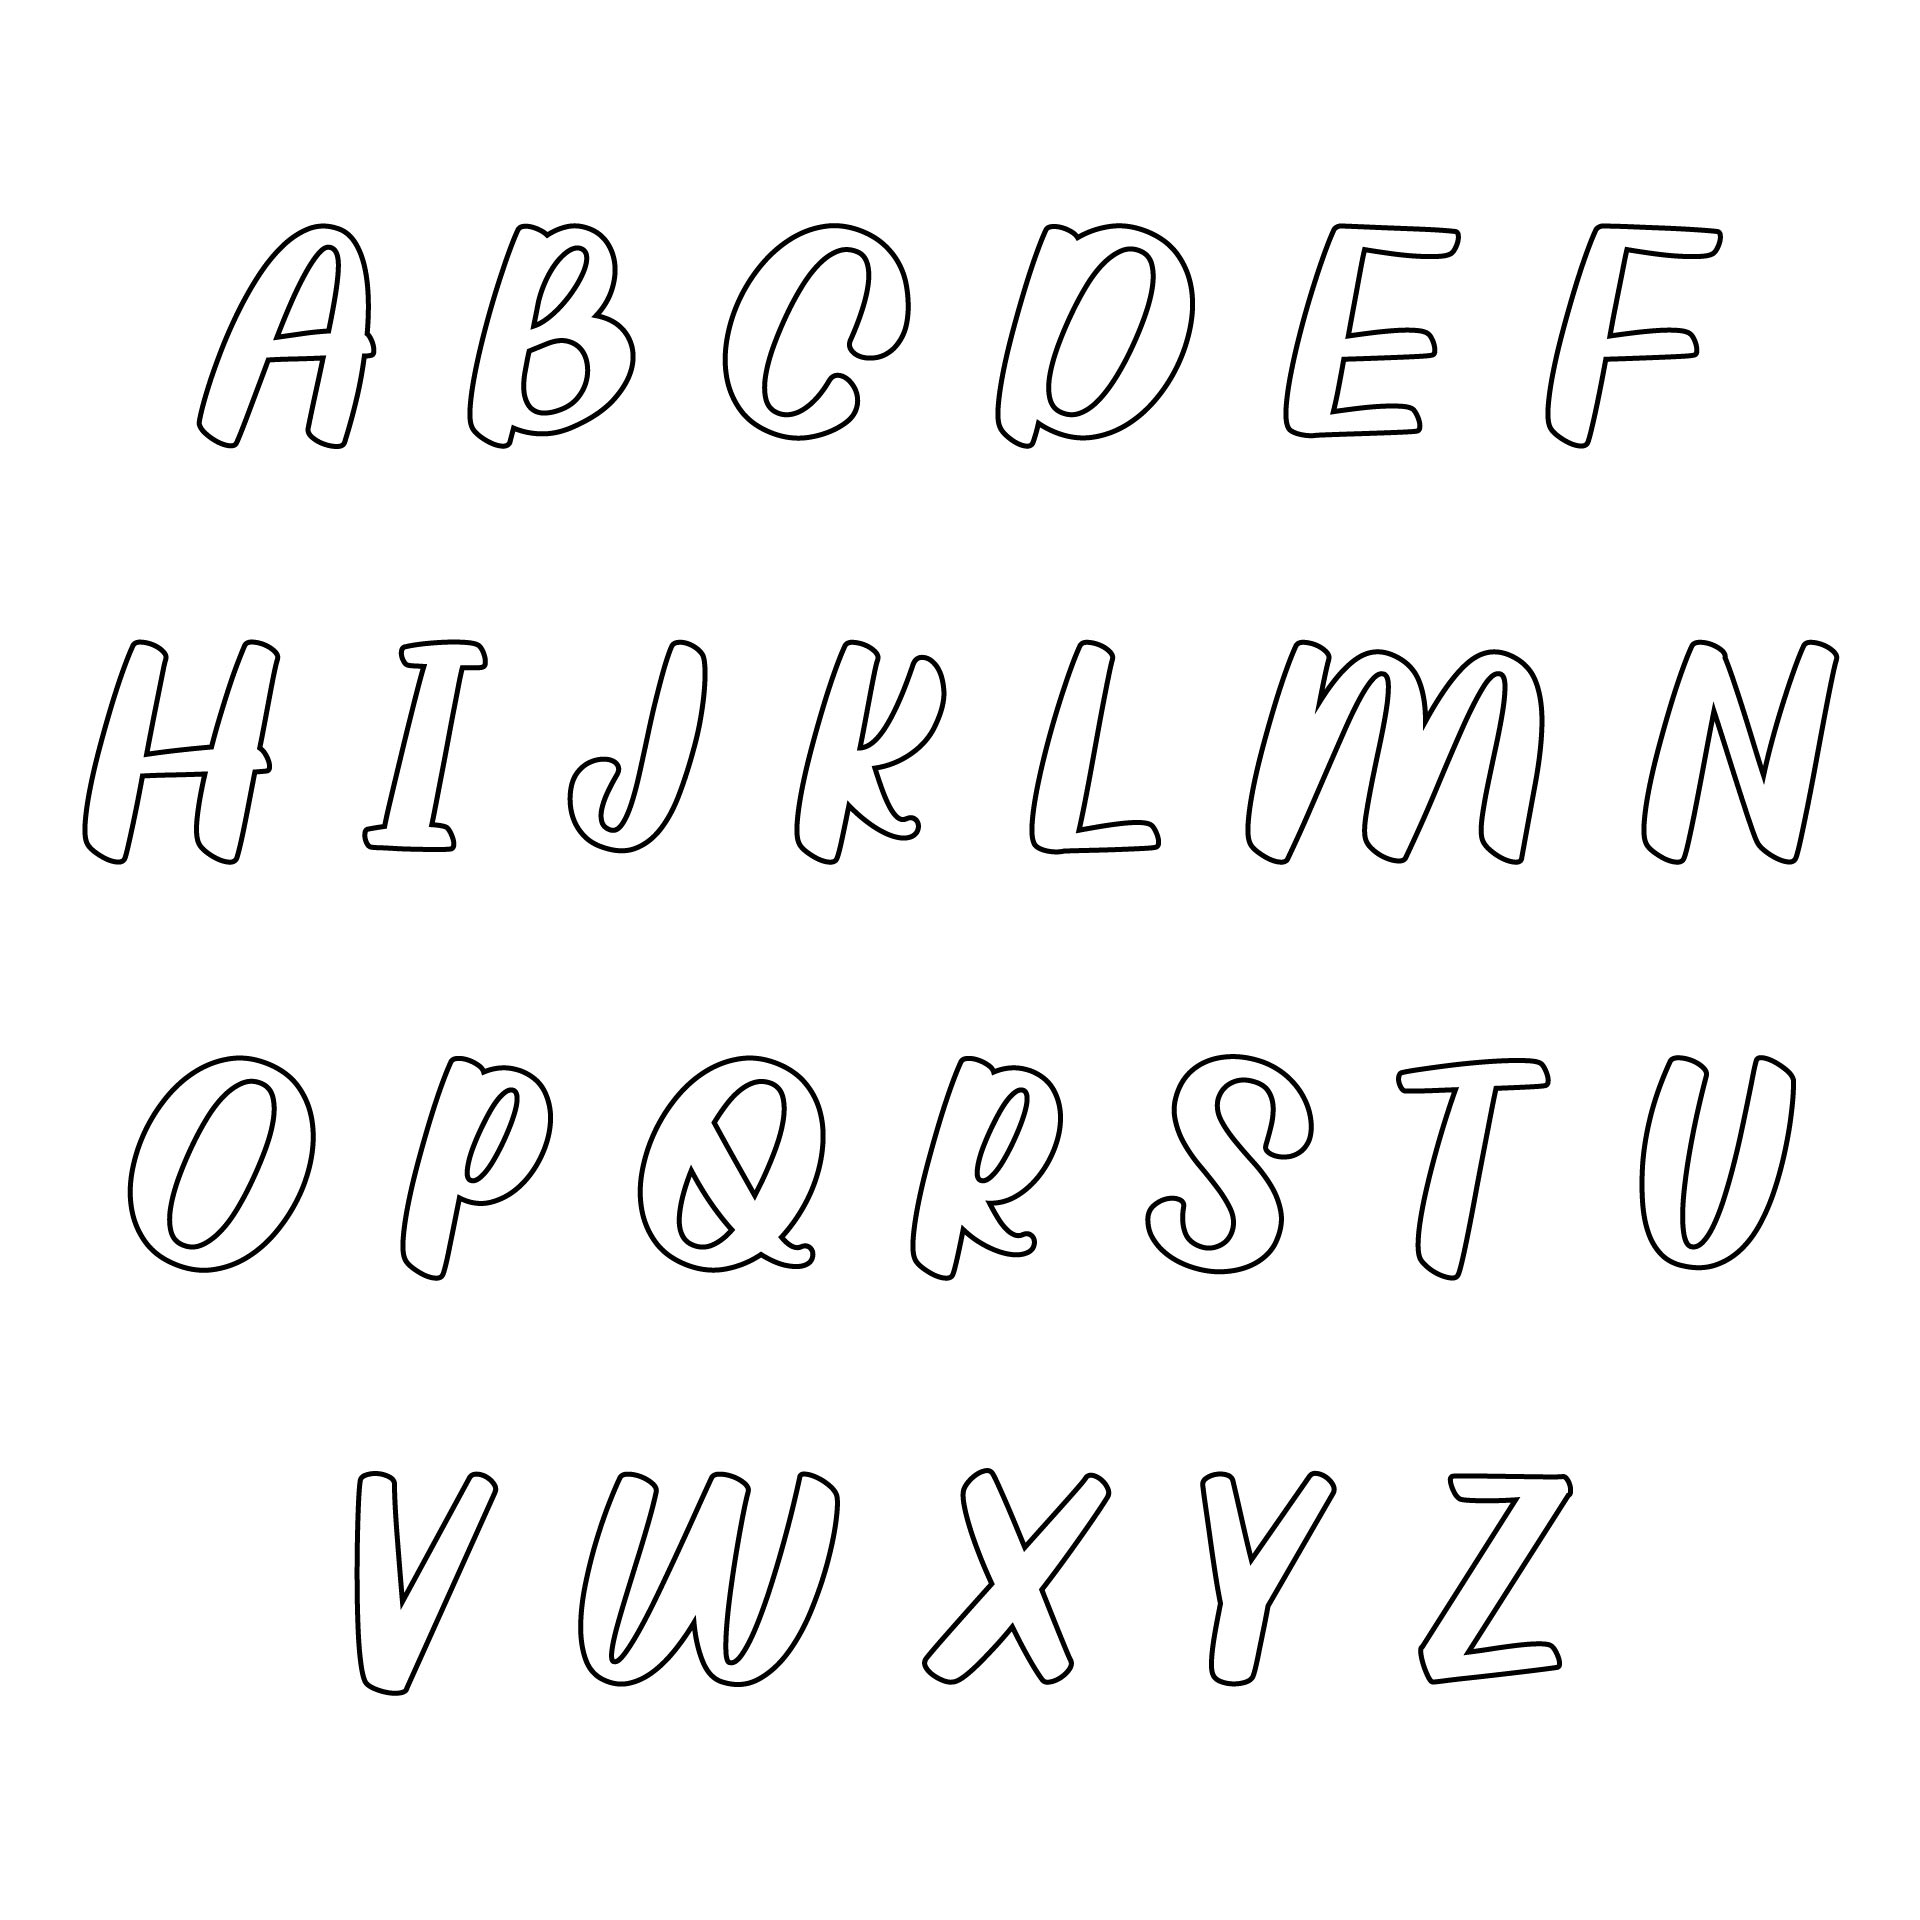 Printable Cut Out Alphabet Stencils